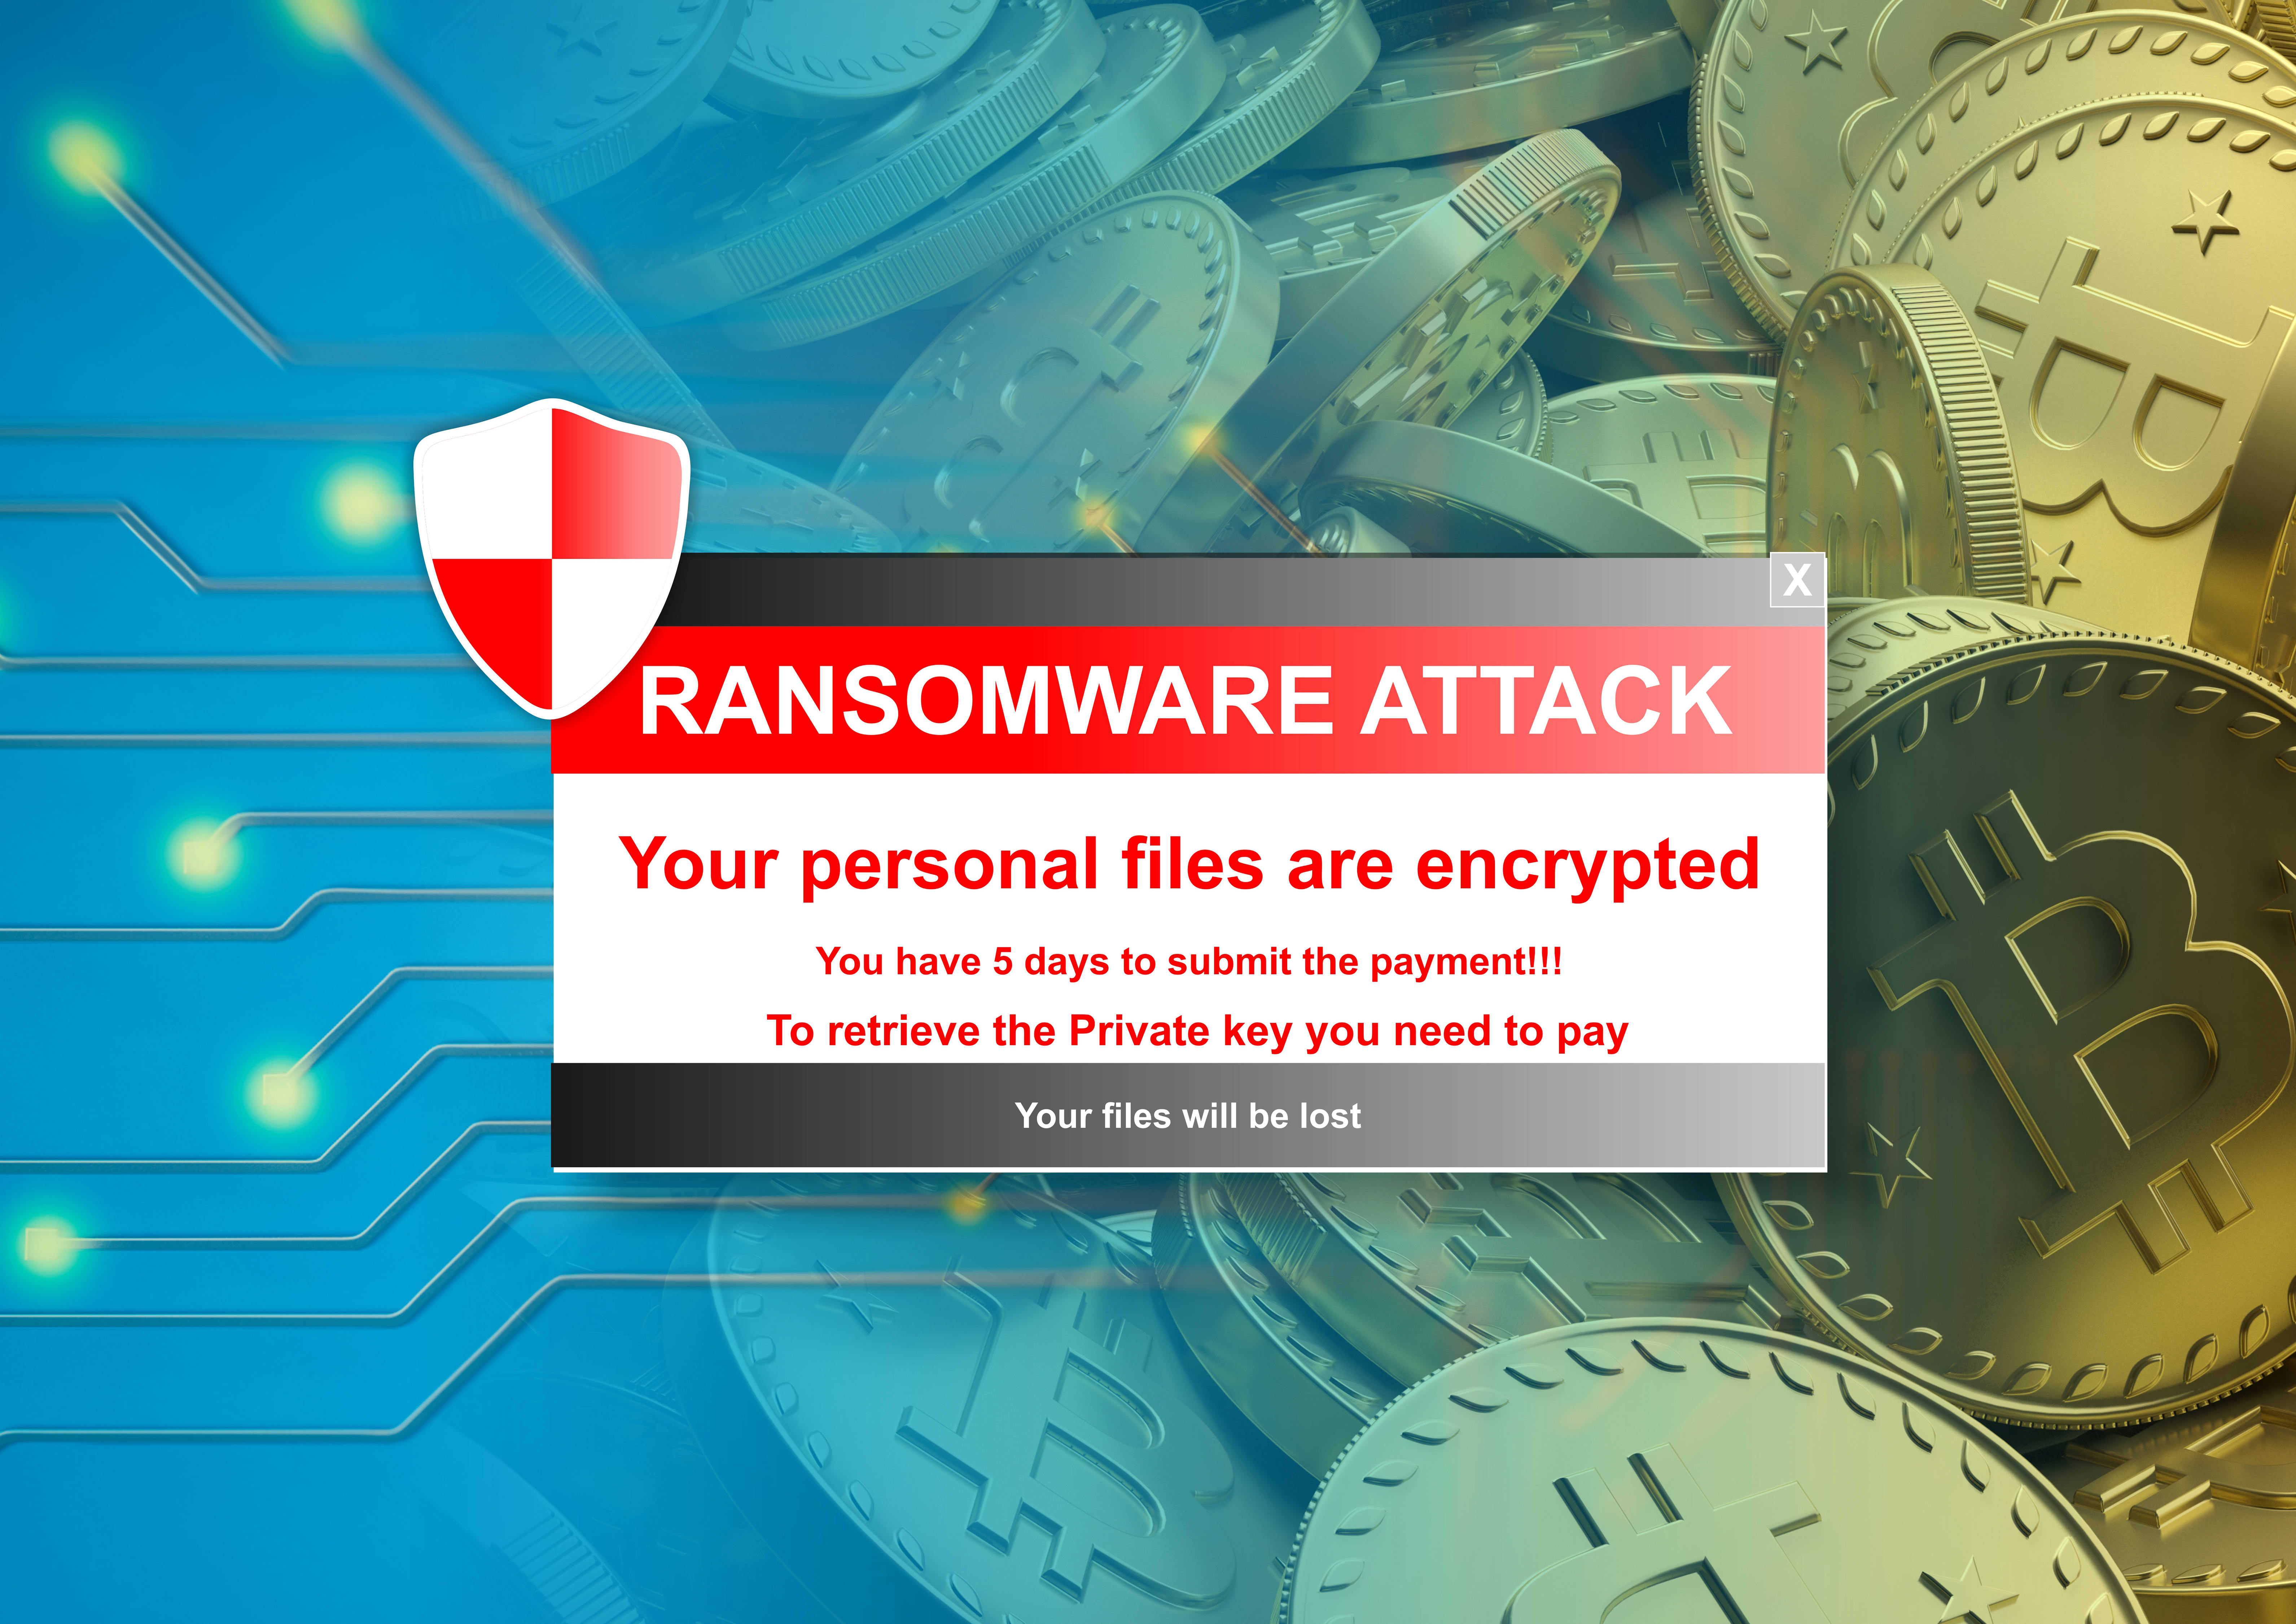 When ransomware strikes, this company helps victims make bitcoin payments